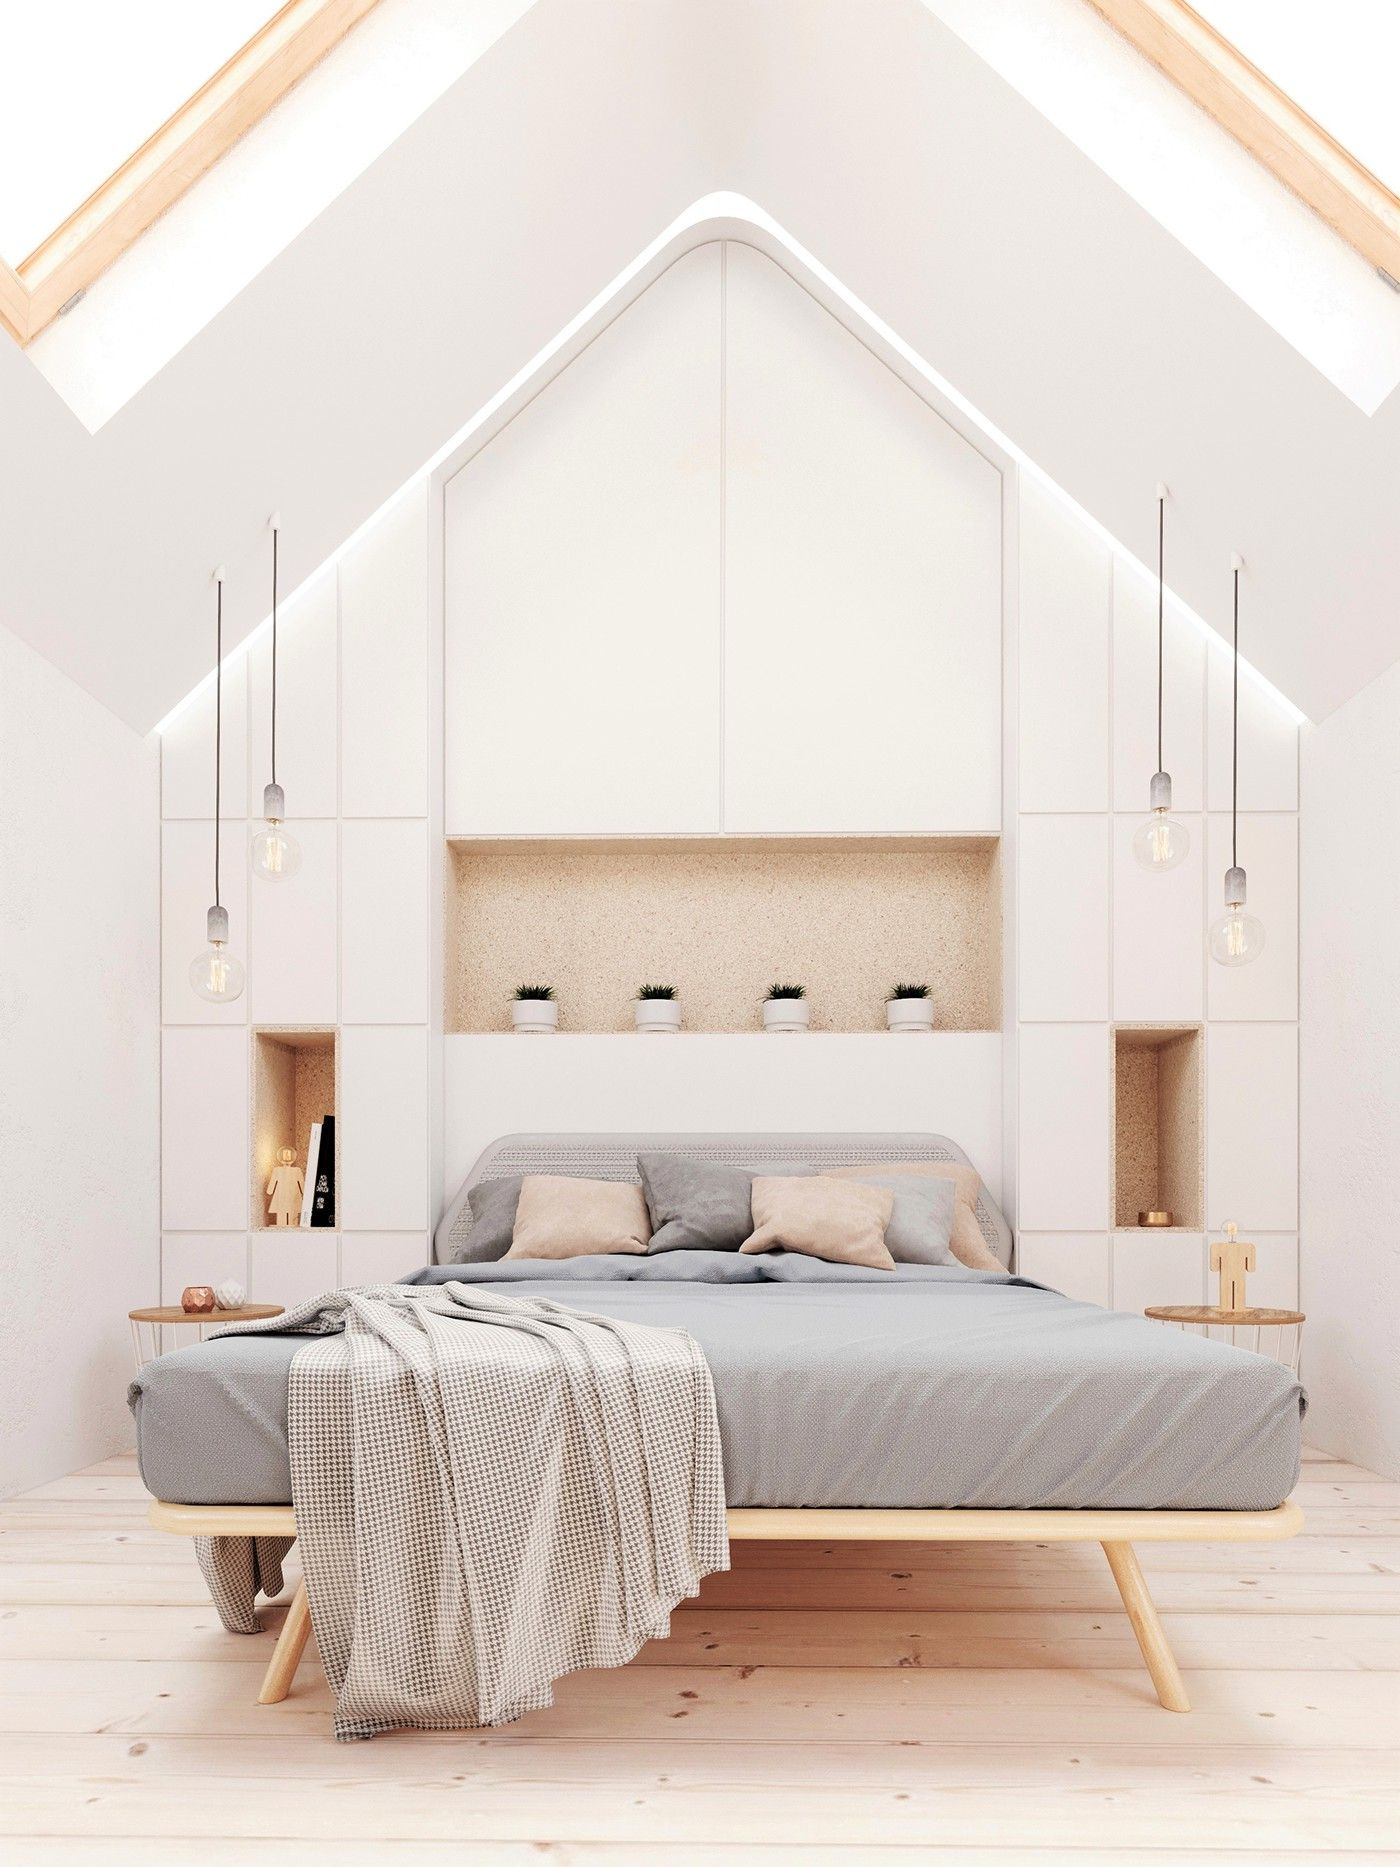 White bedroom 3ds Max Corona render